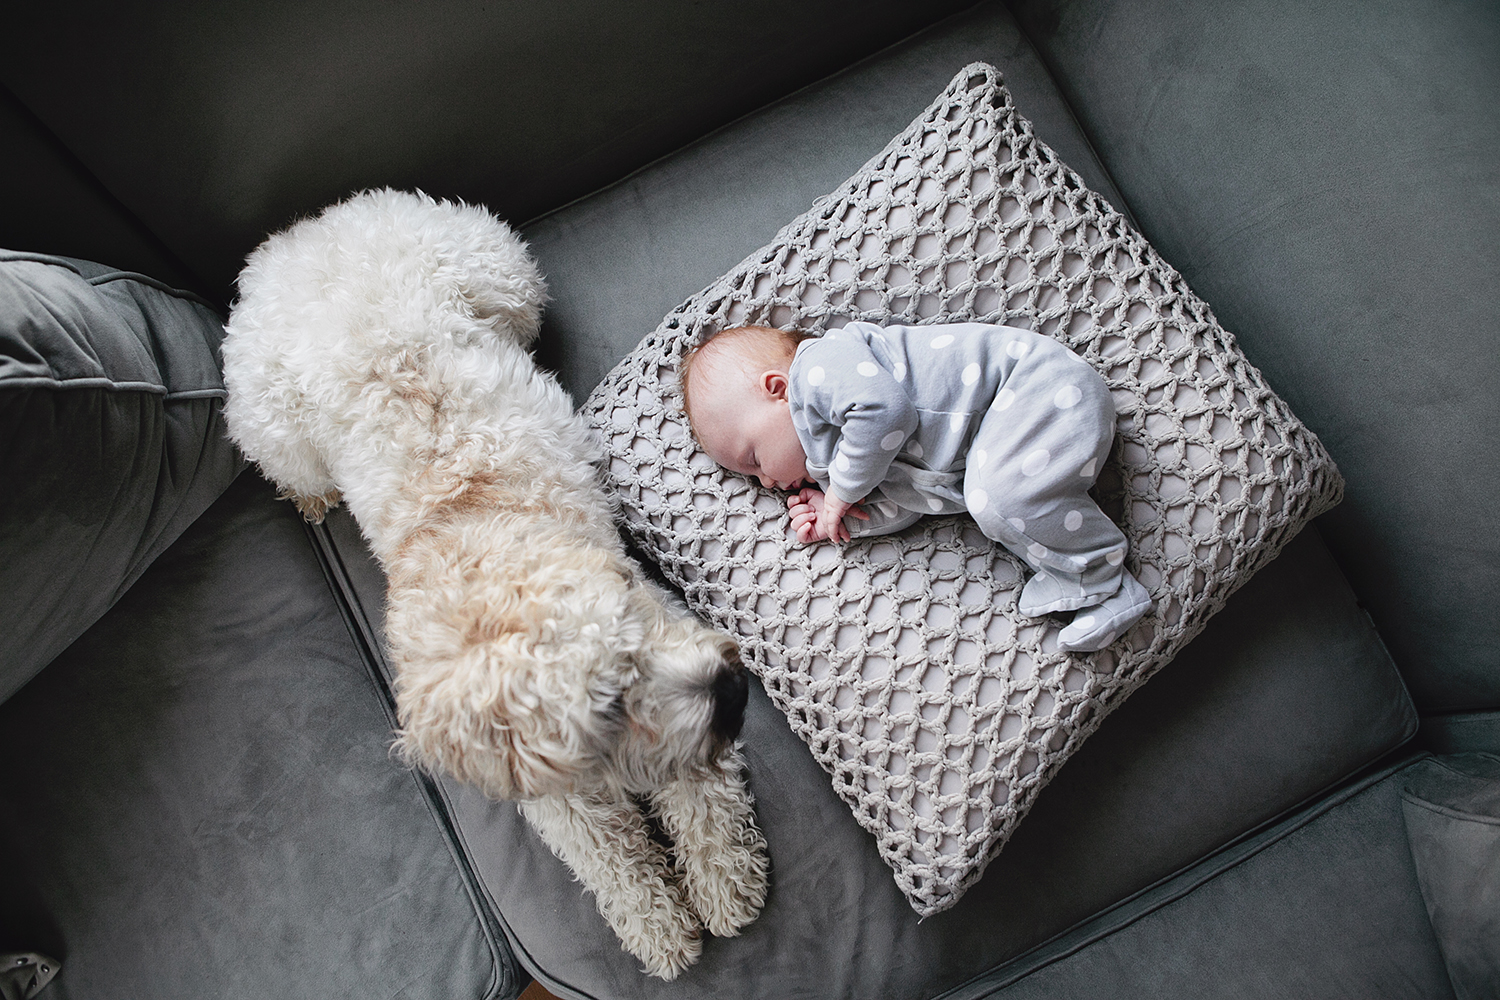 lifestyle-editorial-children-washington-dc-malek-naz-photography-contempo-kids-baby-dog.jpg